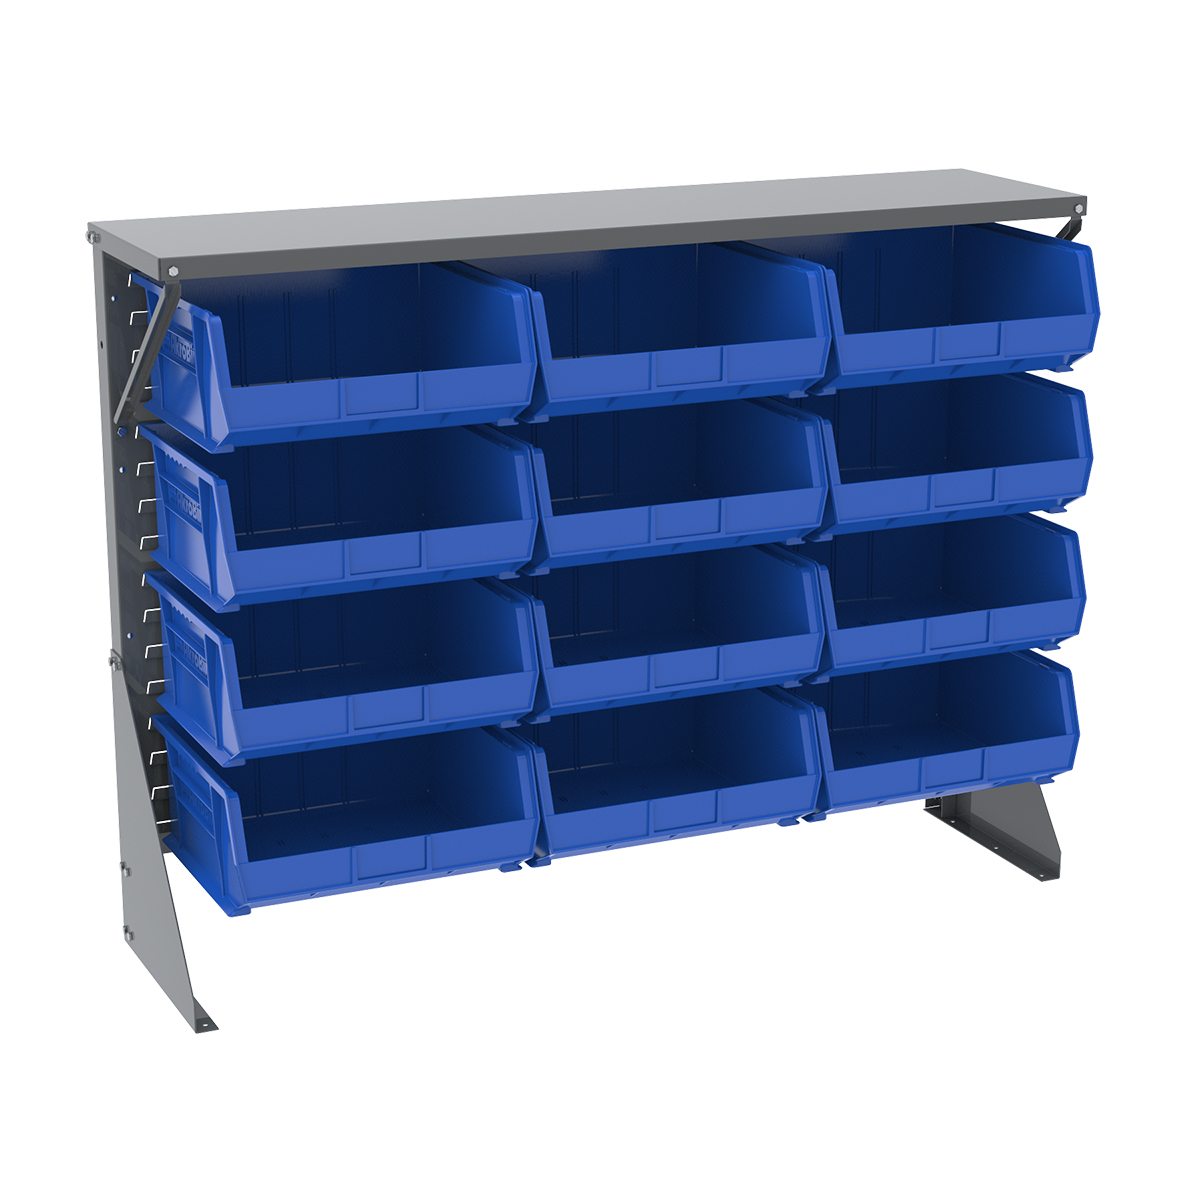 Item DISCONTINUED by Manufacturer.  Low Profile Floor Rack, 1-Sided, Shelf w/ 12 AkroBins, Gray/Blue (30650GY250B).  This item sold in carton quantities of 1.